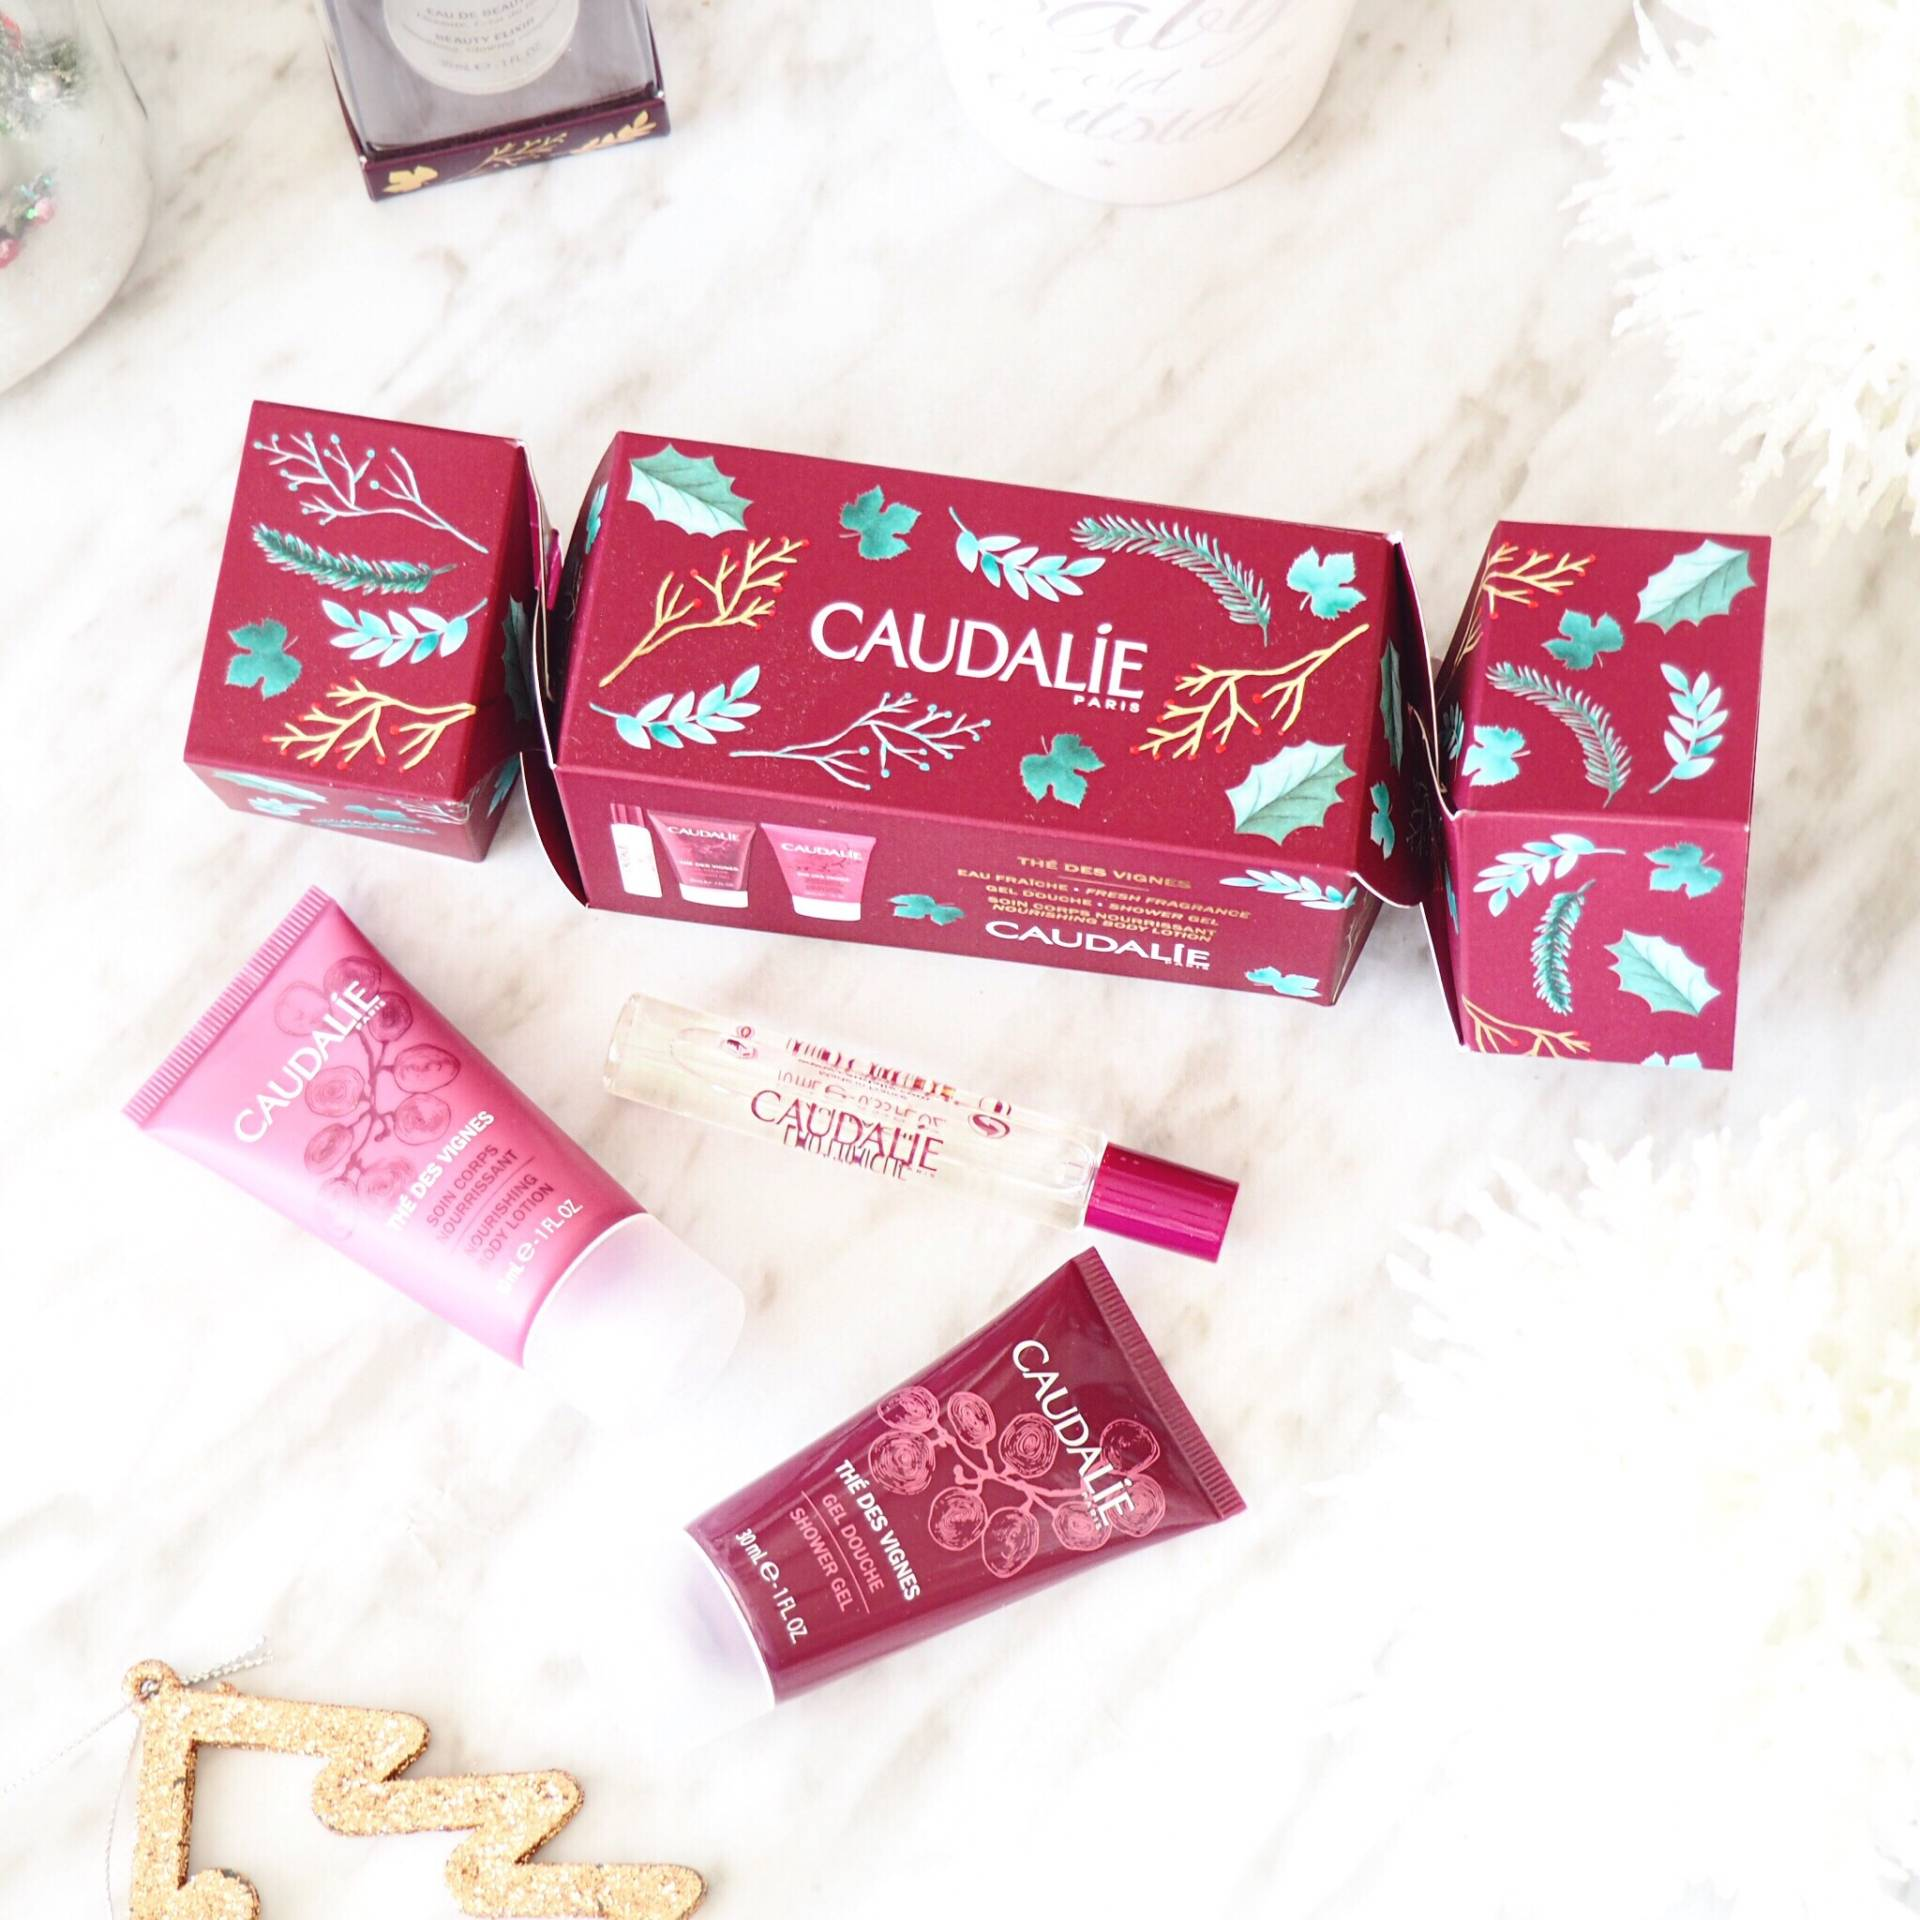 Christmas Gift Sets from Caudalie